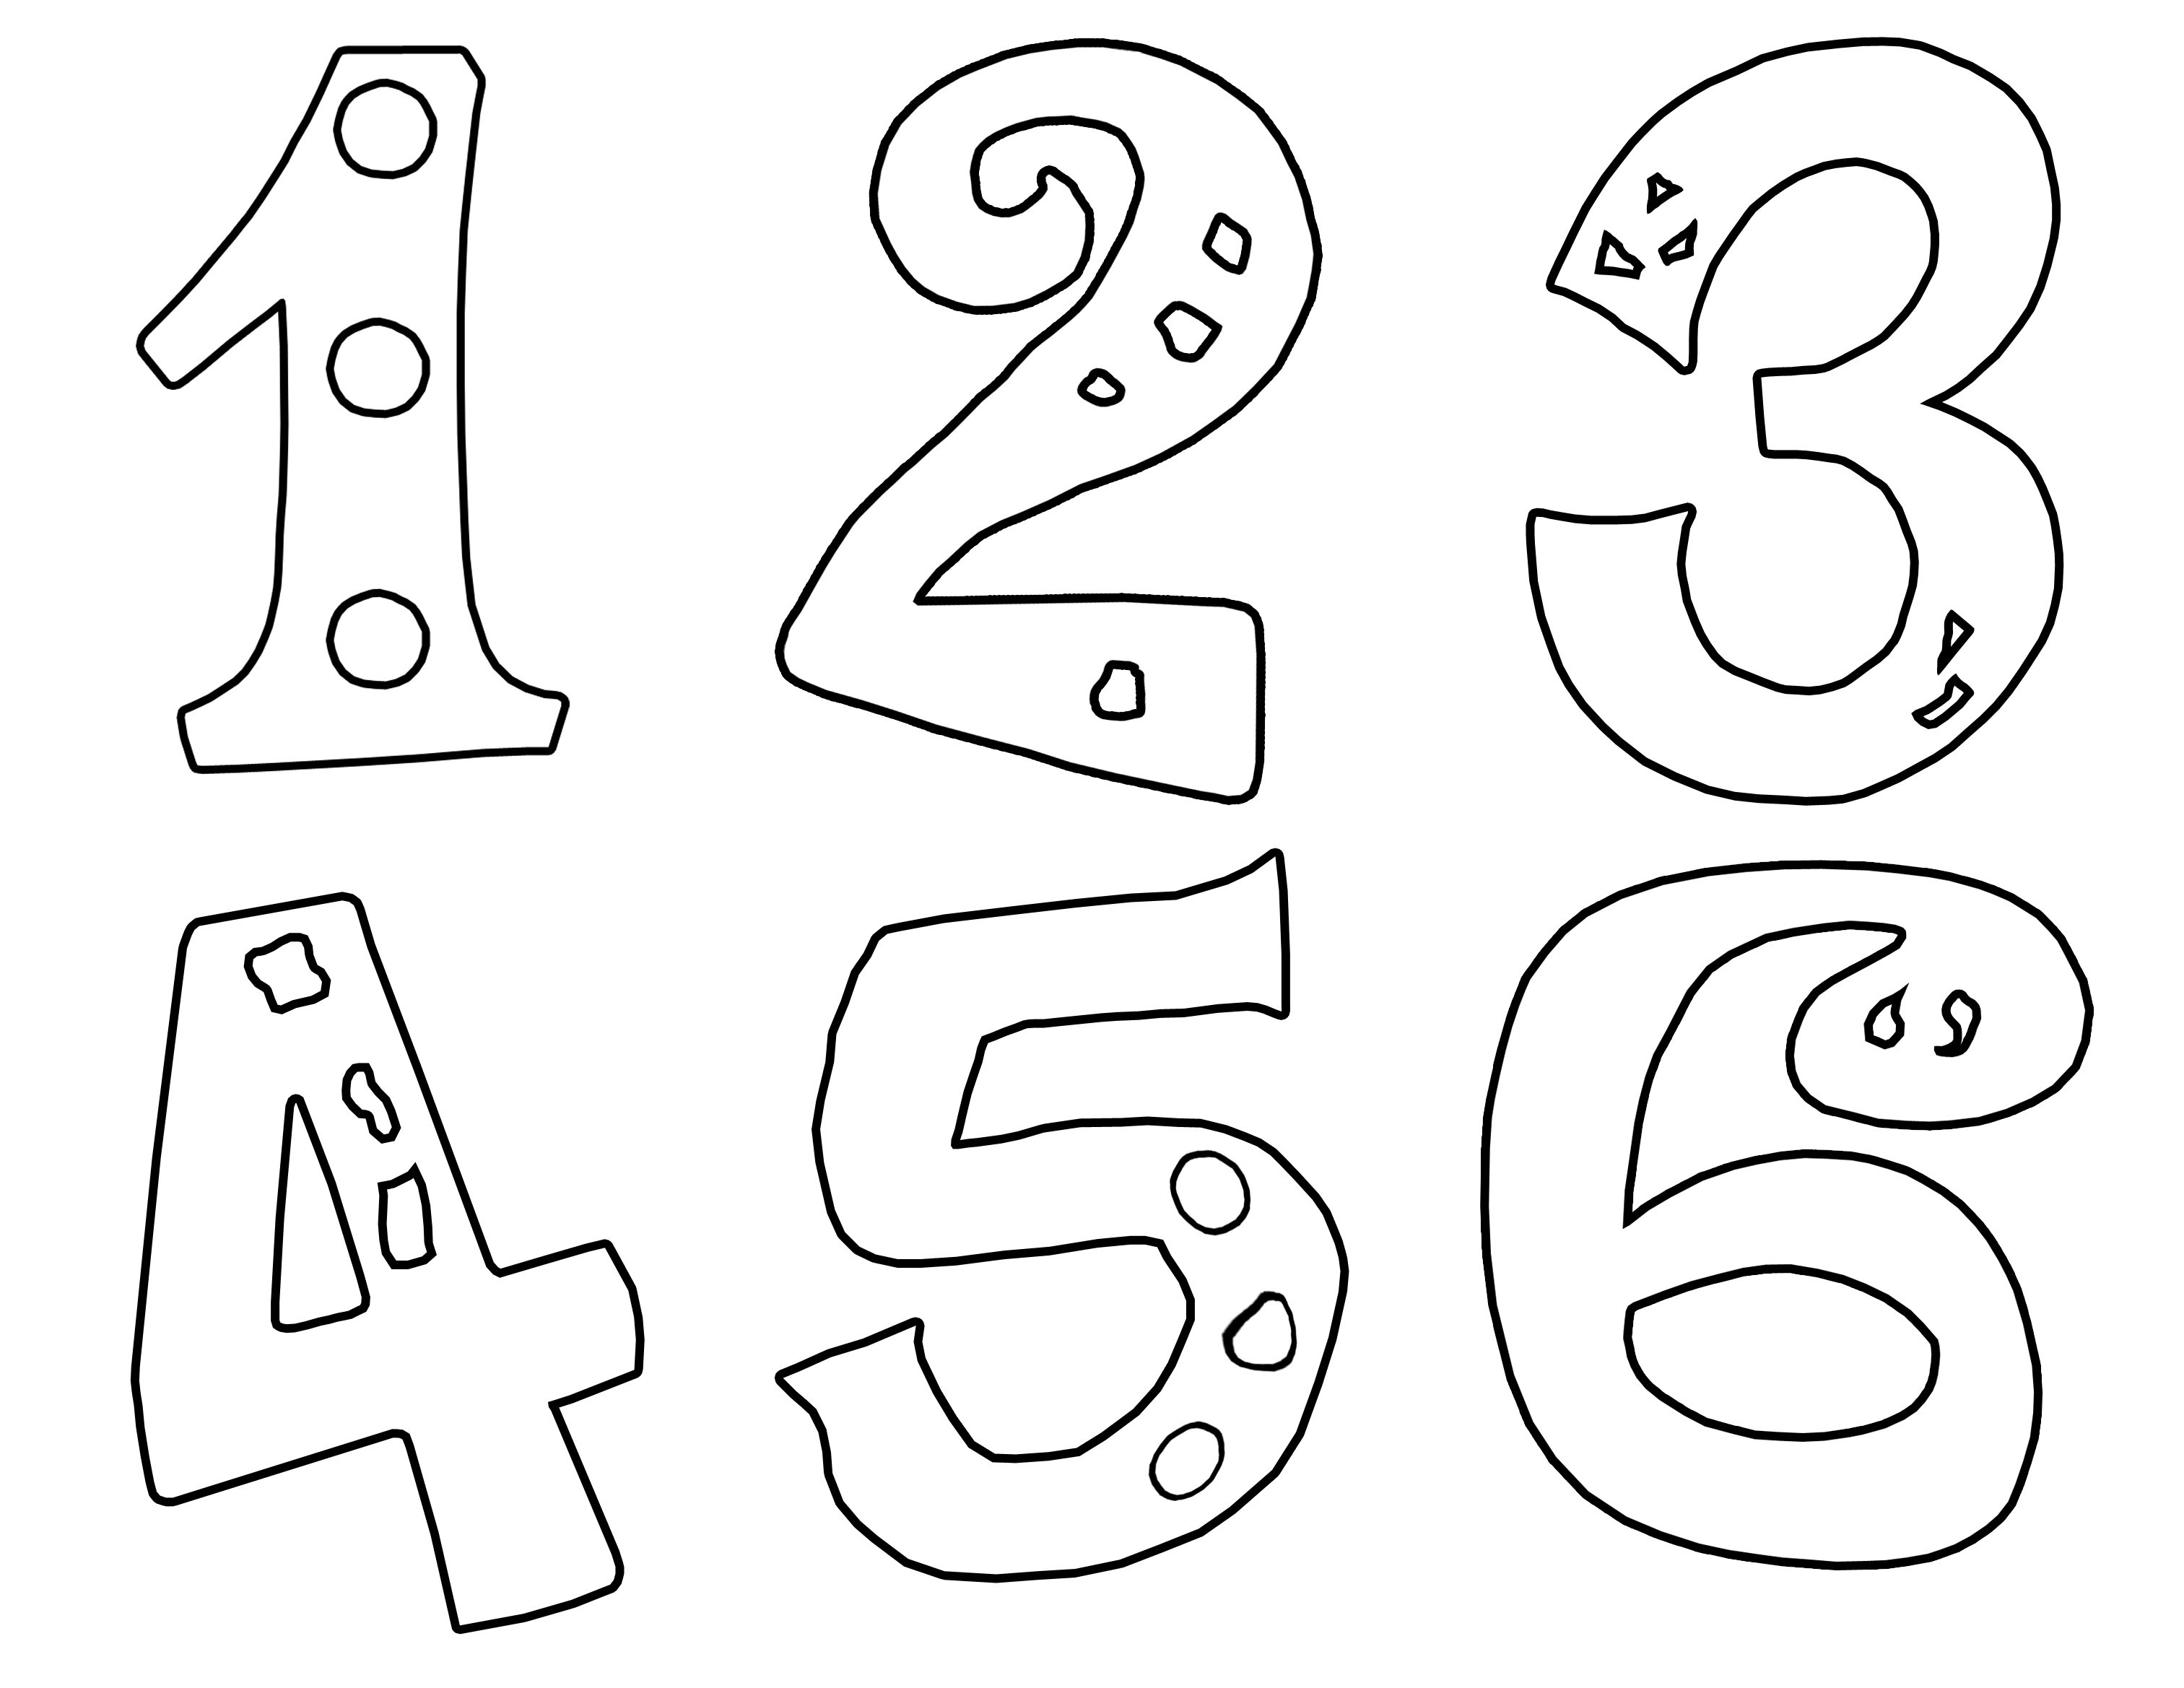 Spanish Numbers Coloring Pages At Getcolorings